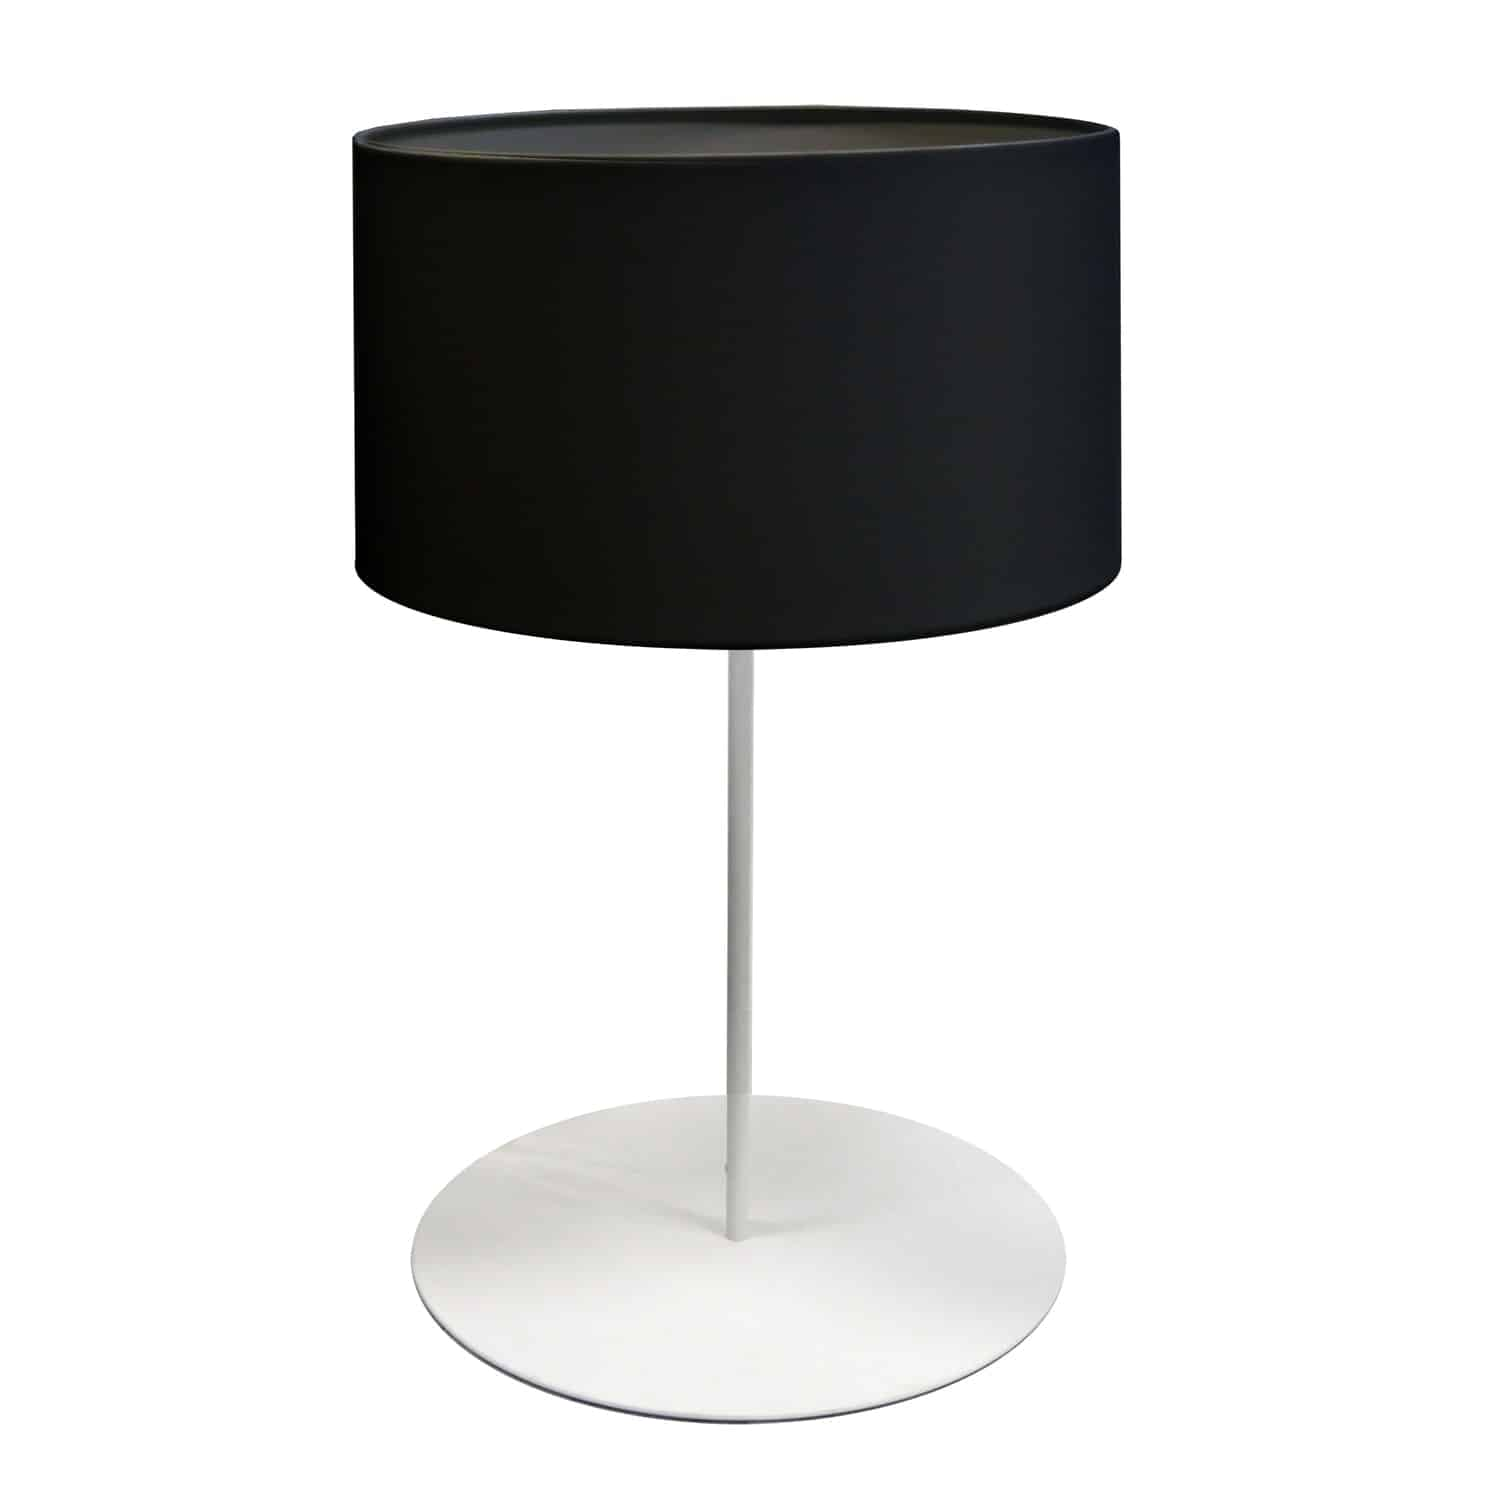 1 Light Drum Table Lamp with JTone Black Shade